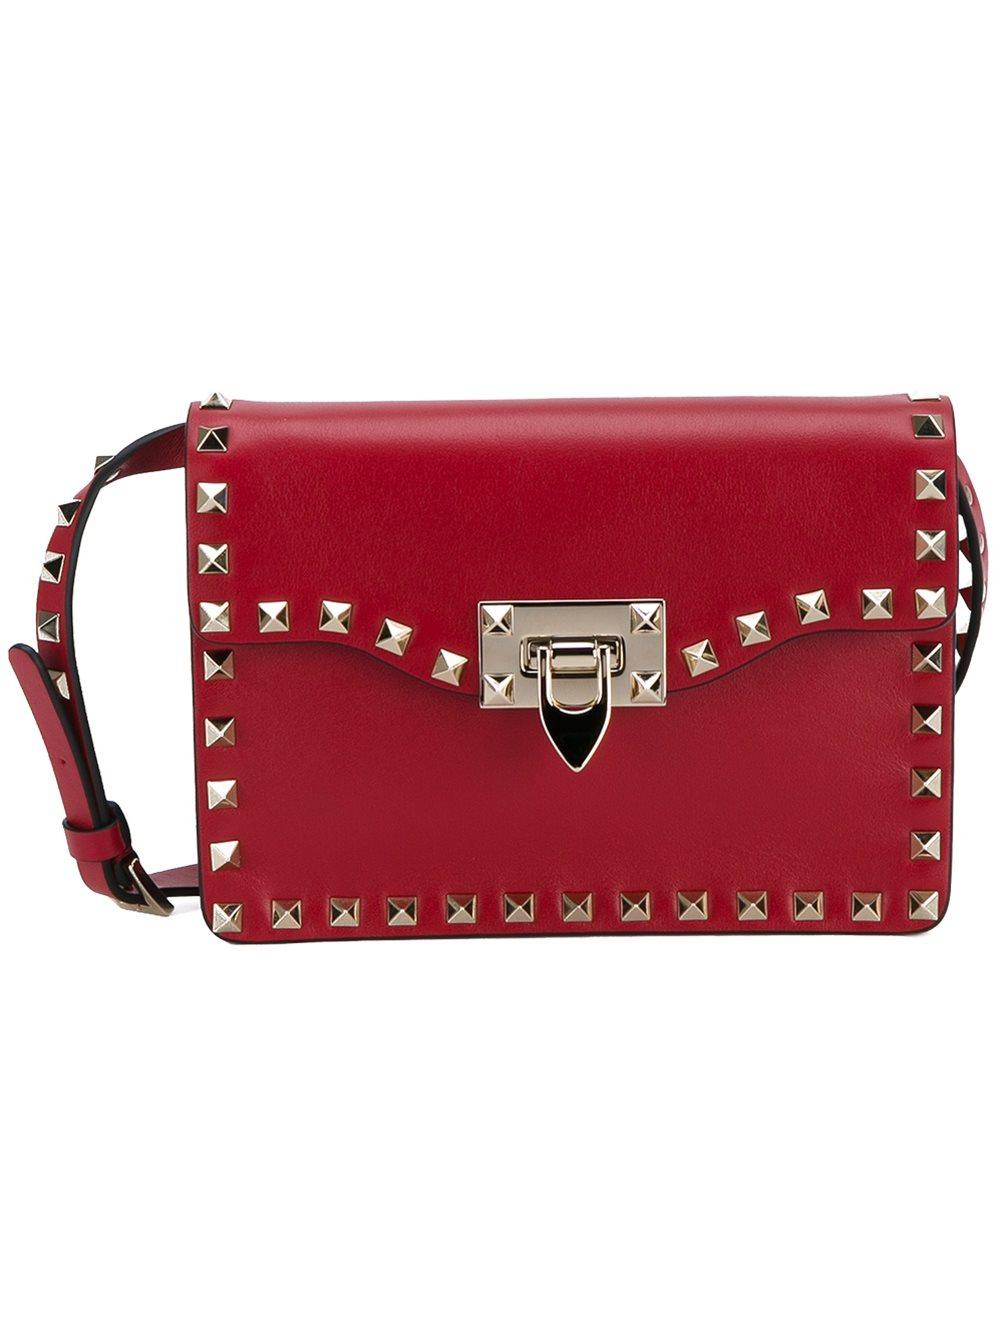 valentino rockstud leather shoulder bag in red lyst. Black Bedroom Furniture Sets. Home Design Ideas